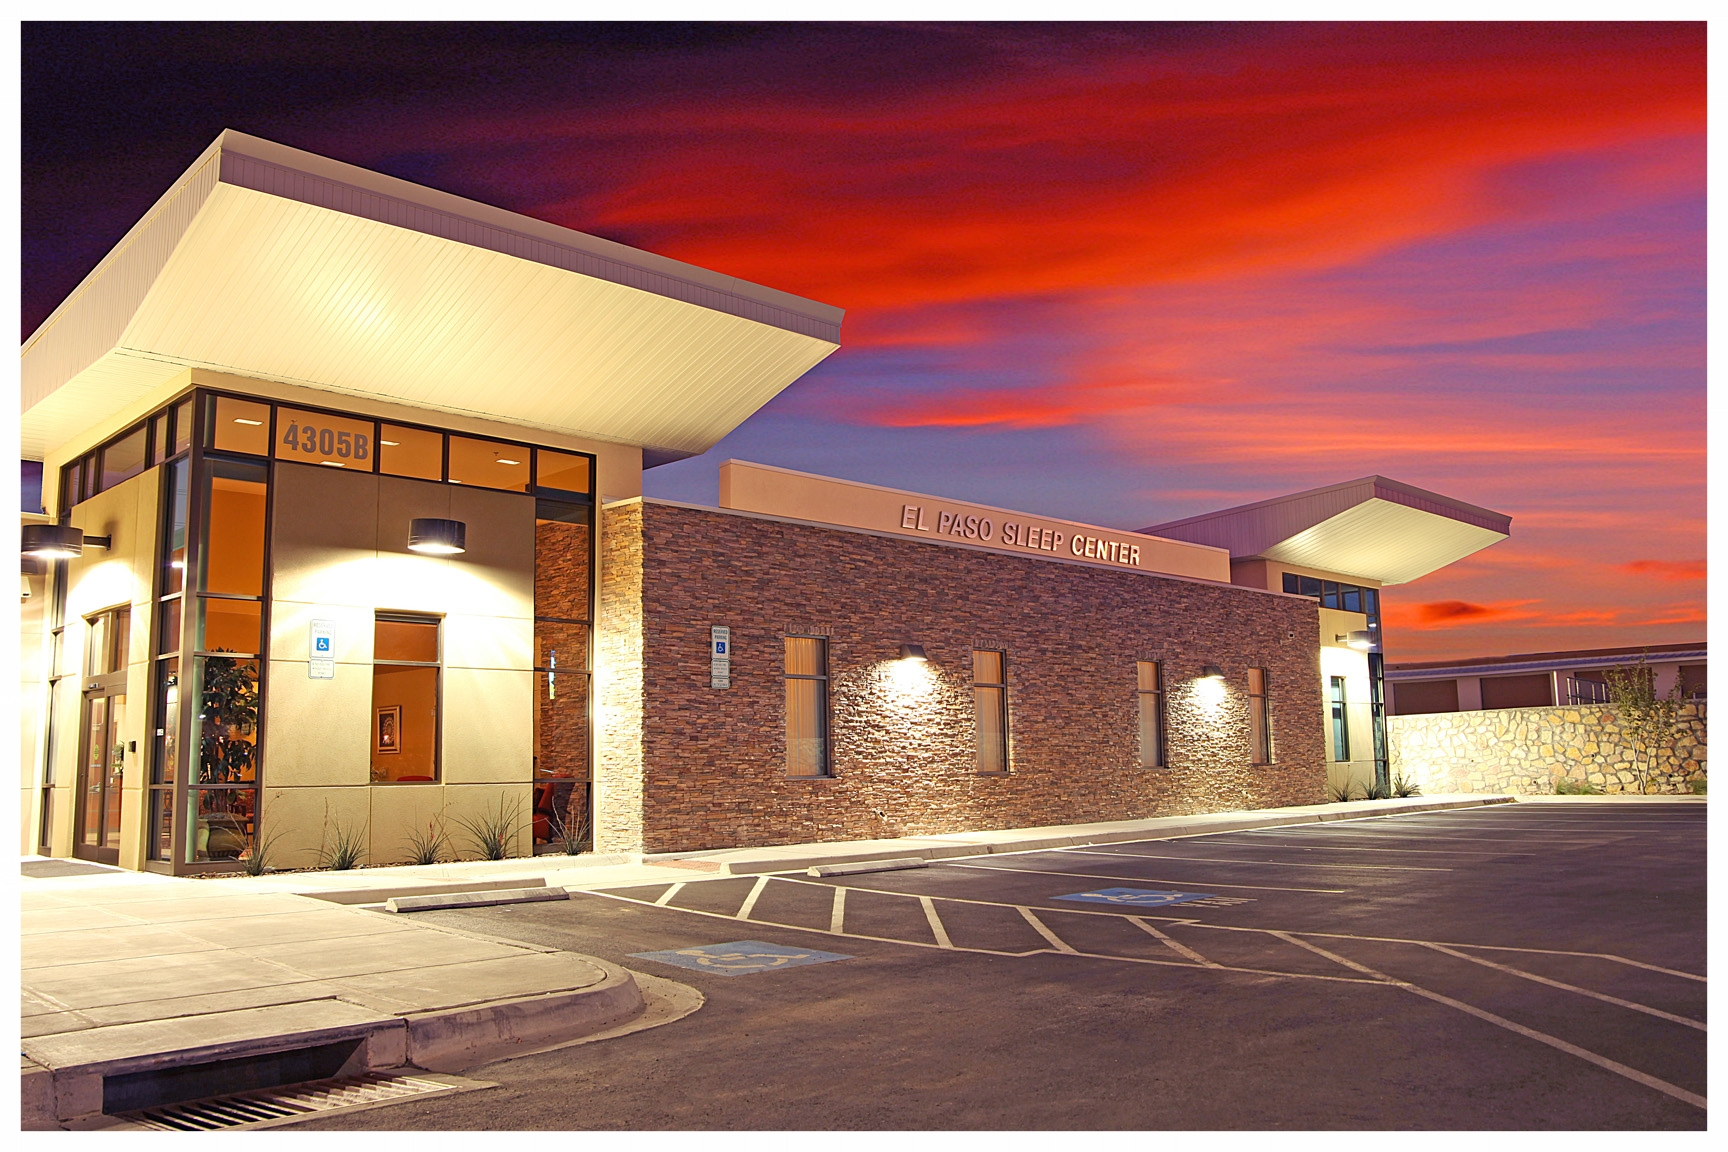 El Paso Sleep Center